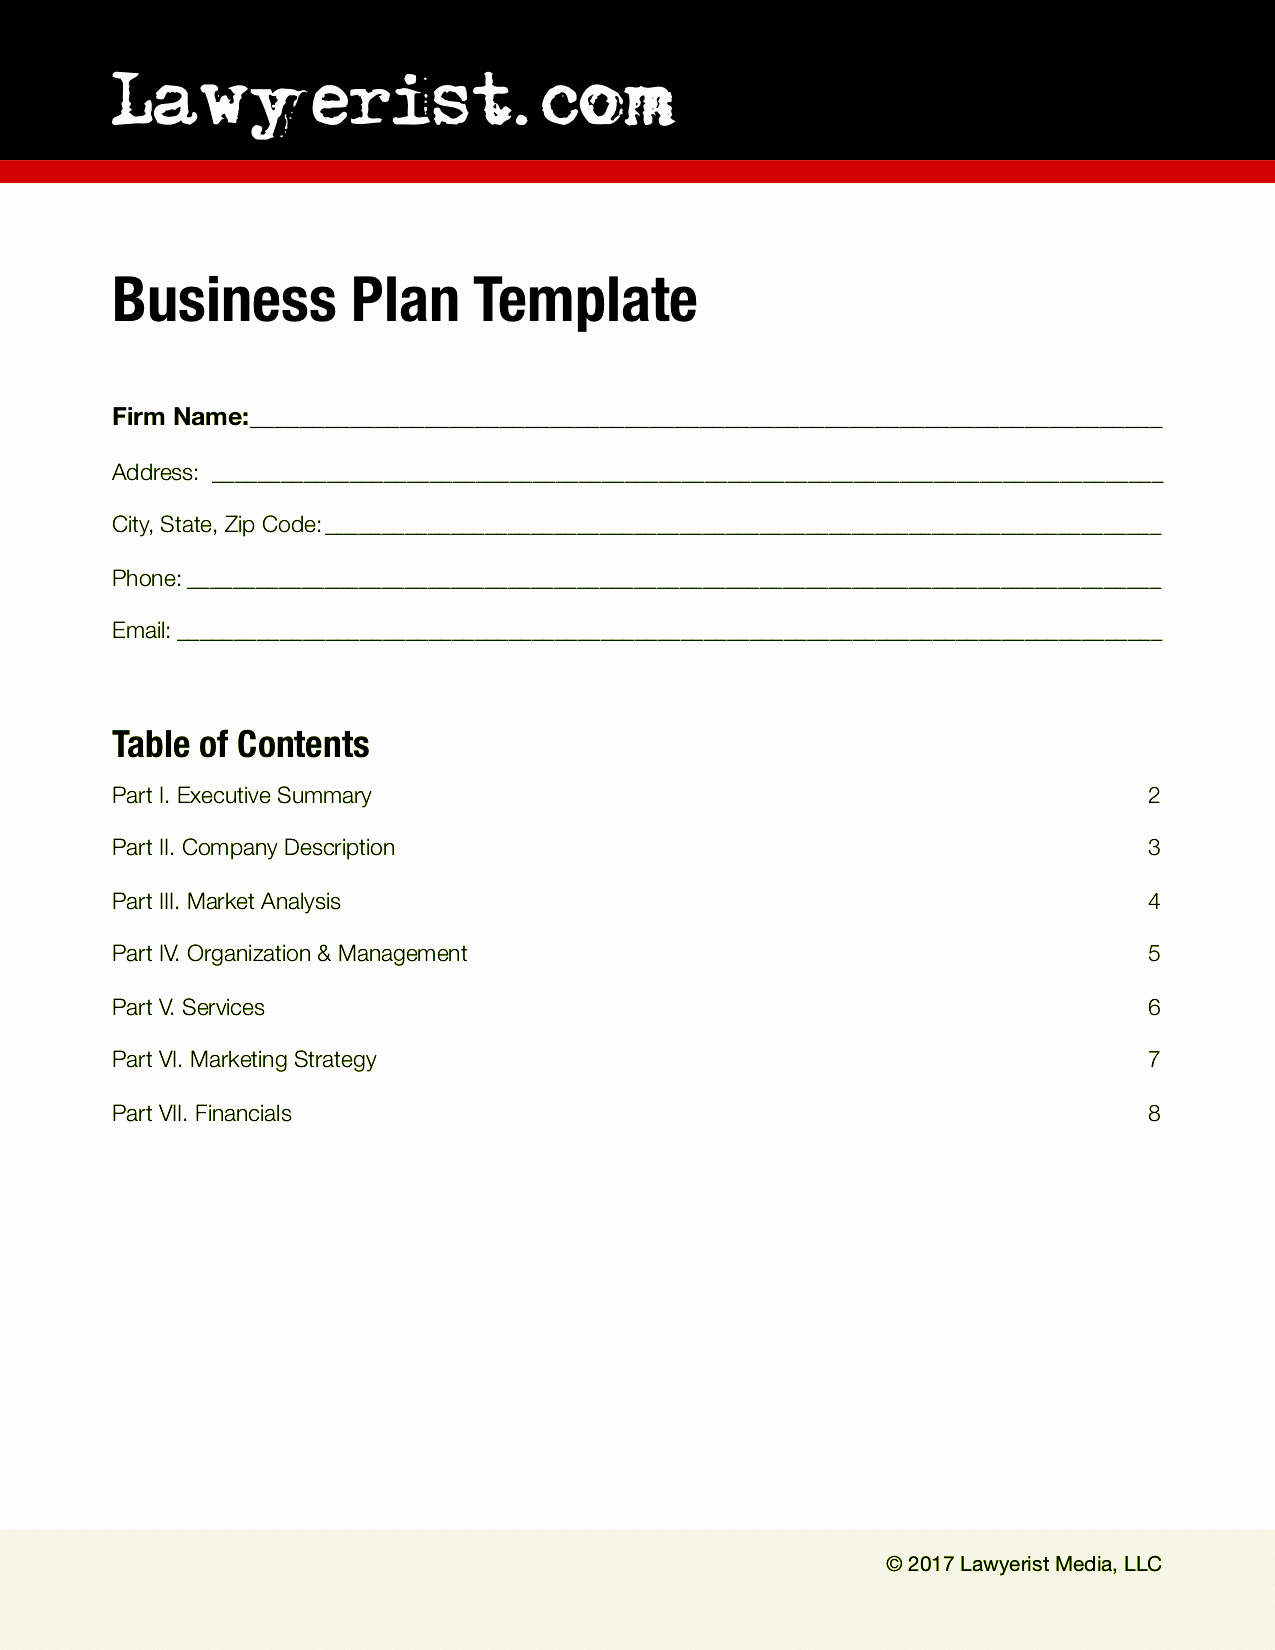 Business Plan Outline Template Free Inspirational Business Plan Template